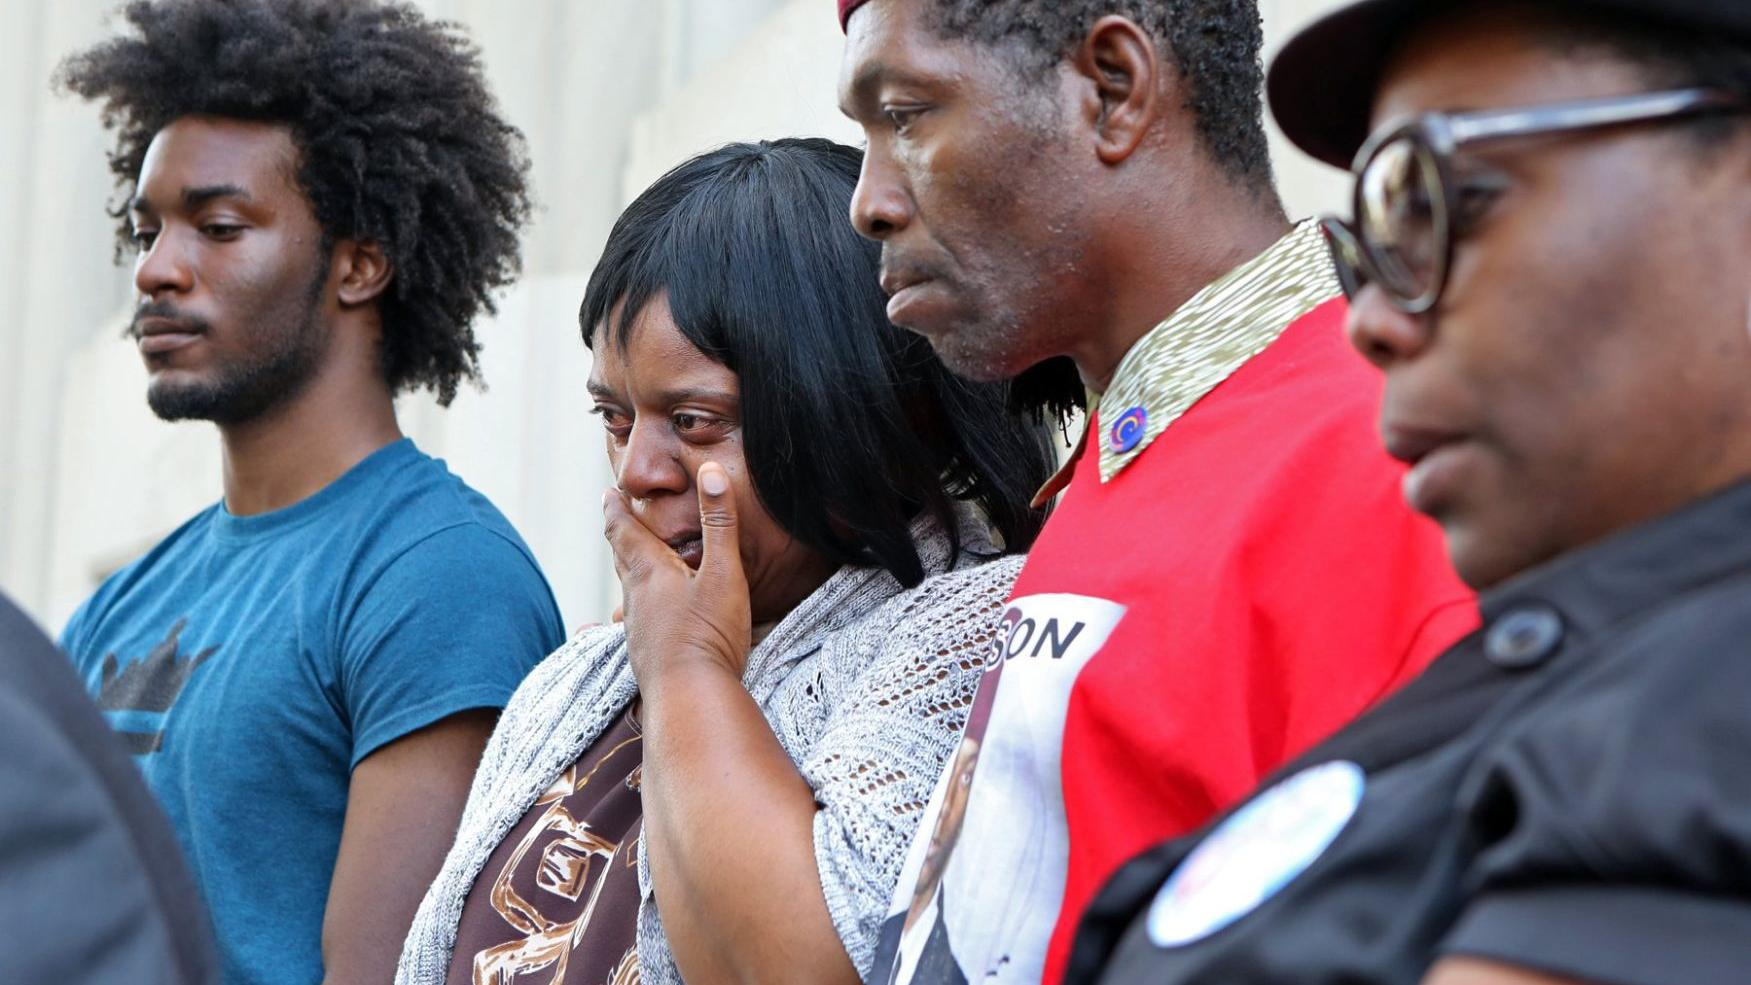 Messenger: Lawsuit alleges St. Louis policies seek to silence victims of police brutality